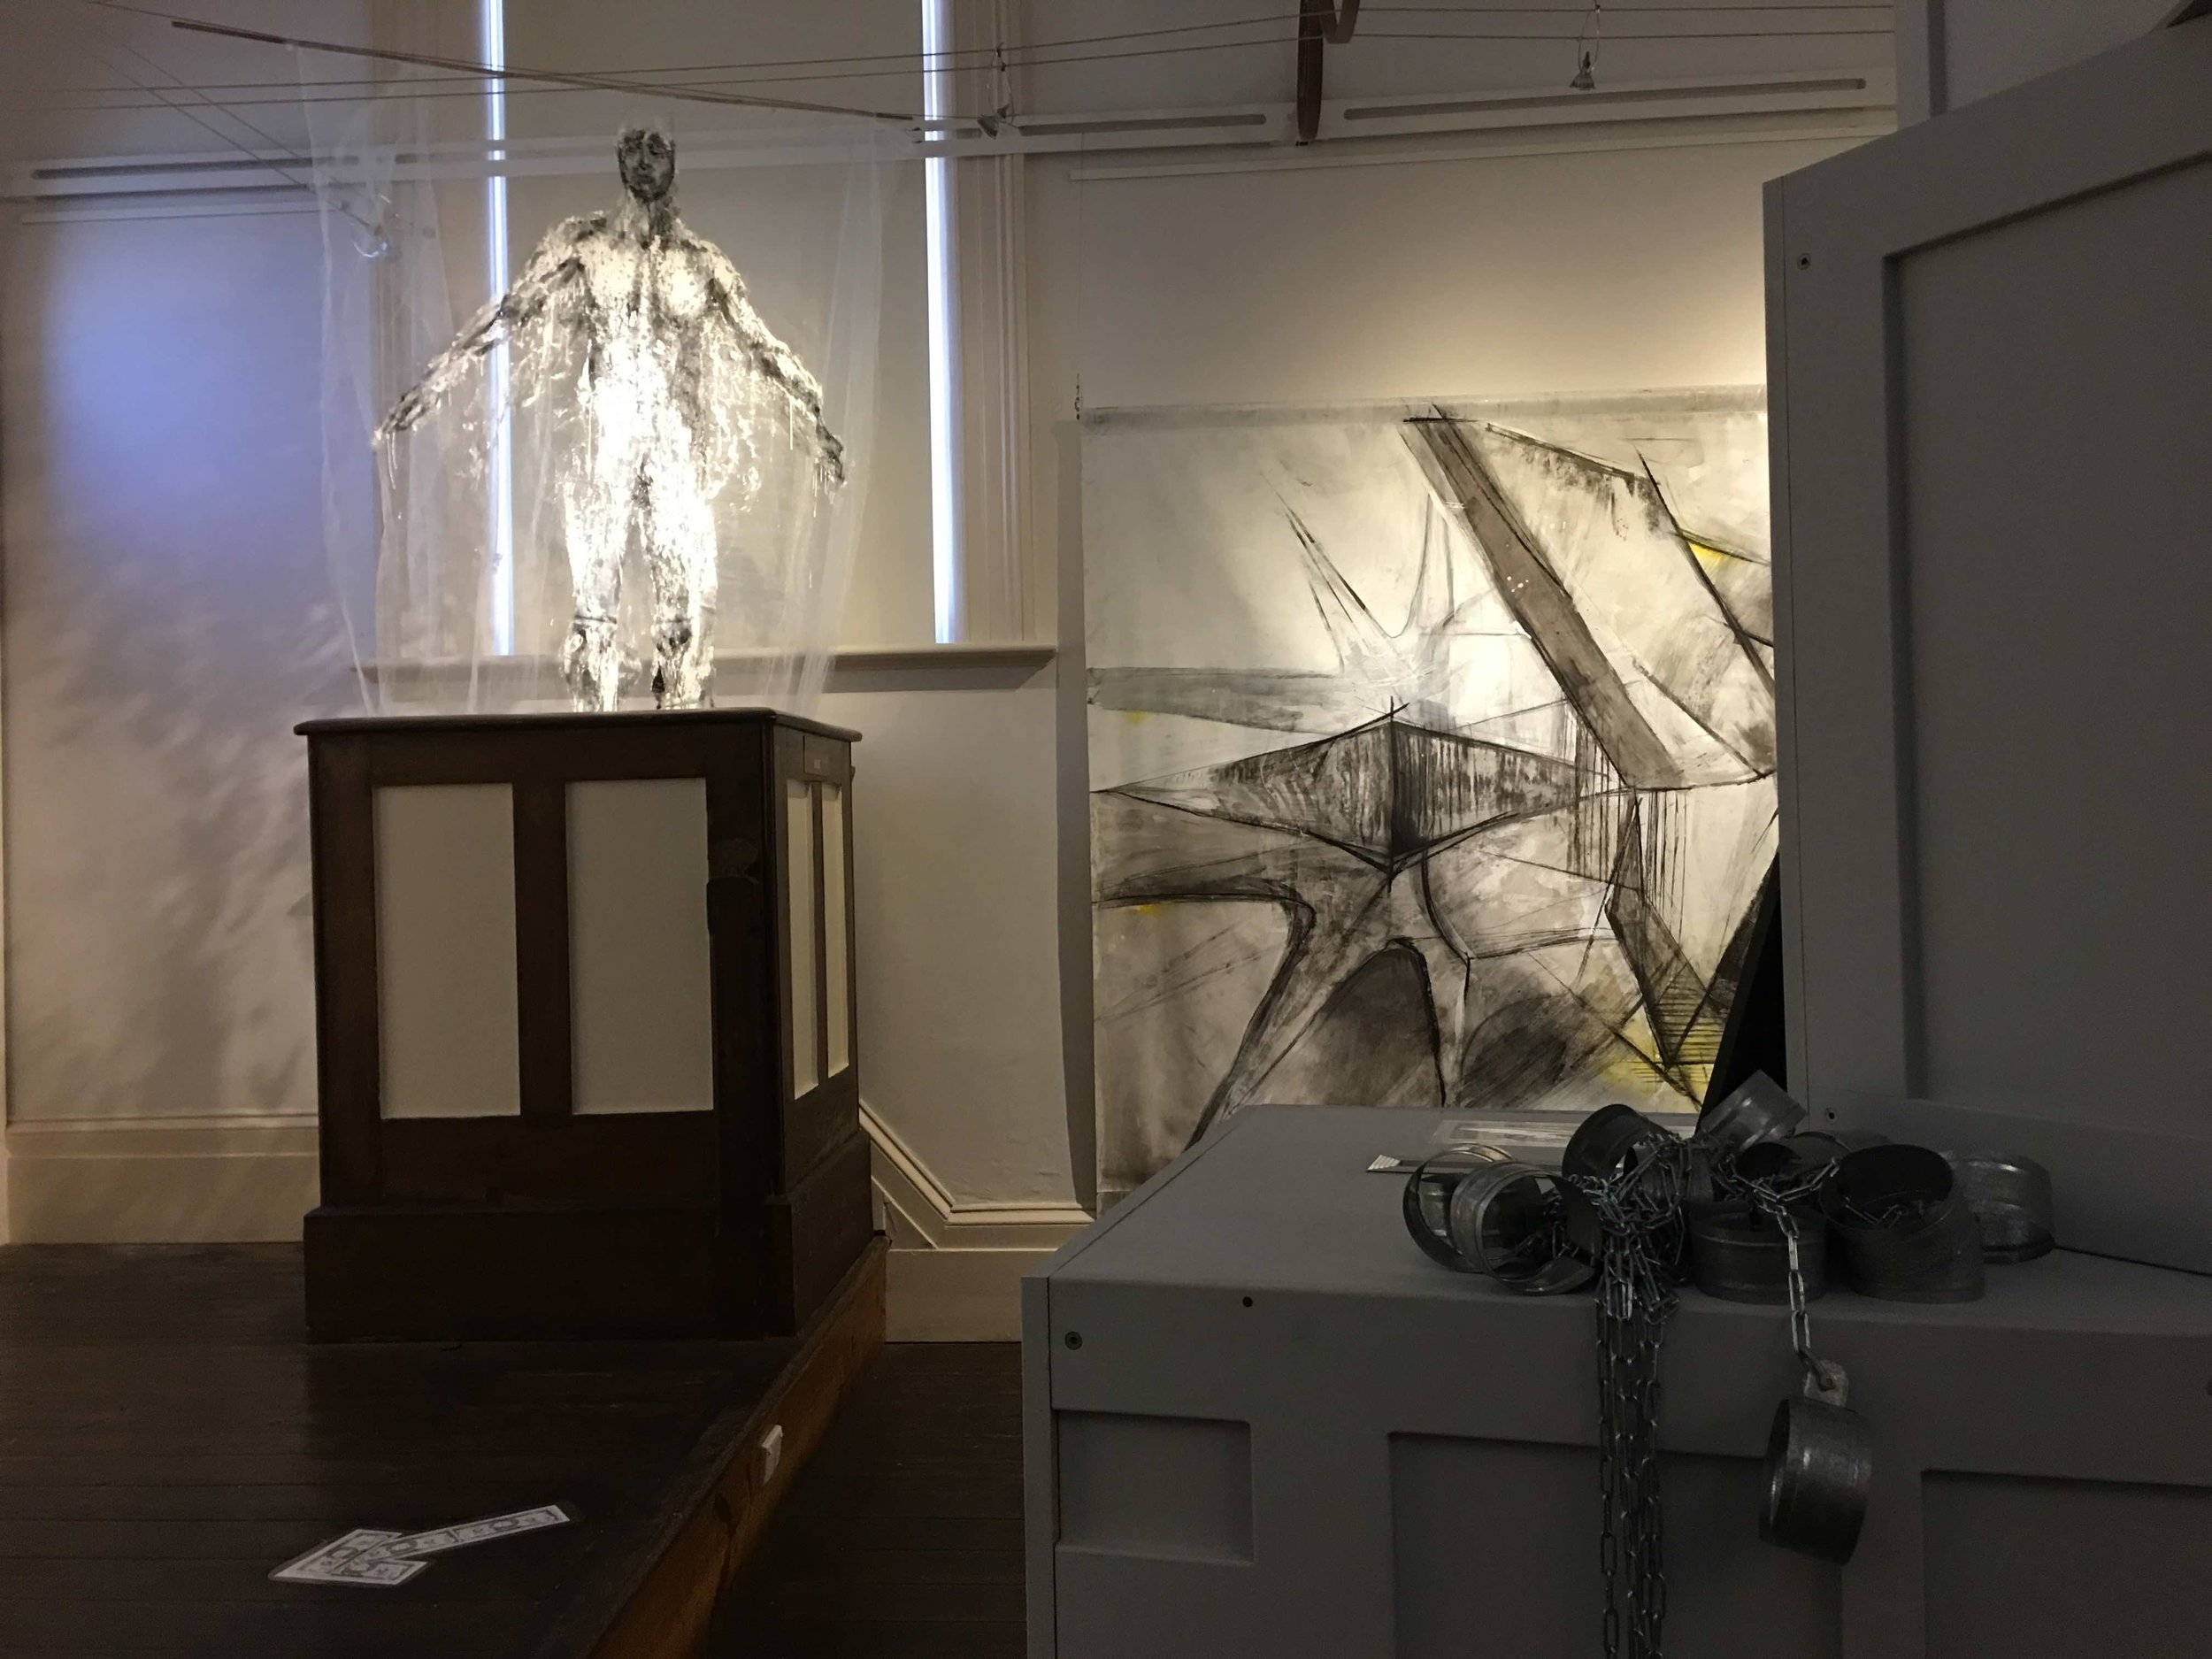 Works by Emilijia Kasumovic (left) and Jelena Voijnuvic (middle background), The Colony, 2019